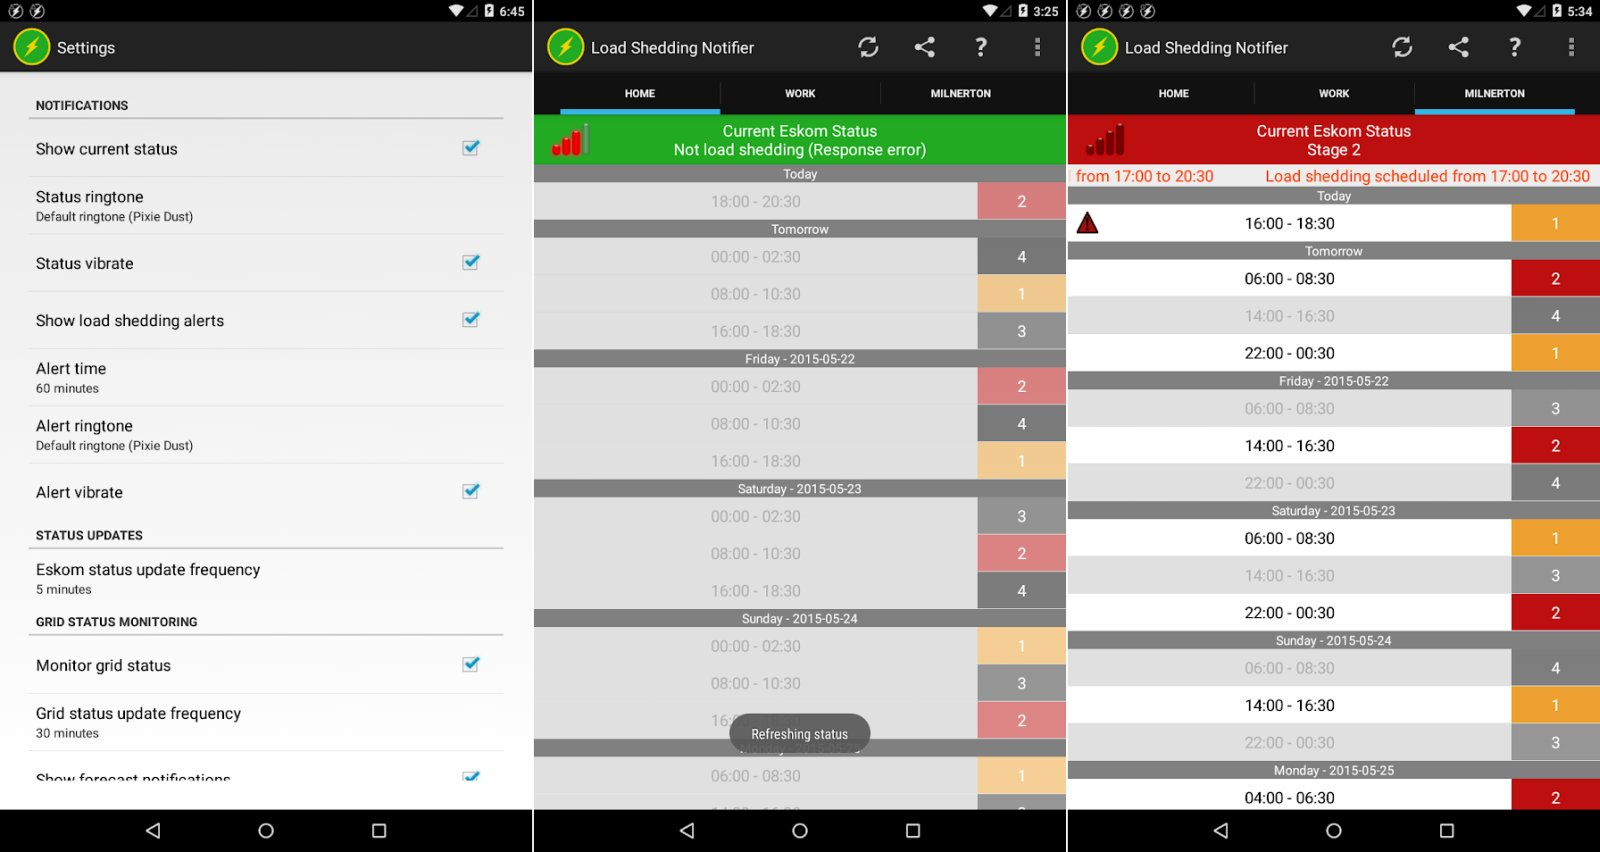 load shedding notifier load shedding apps